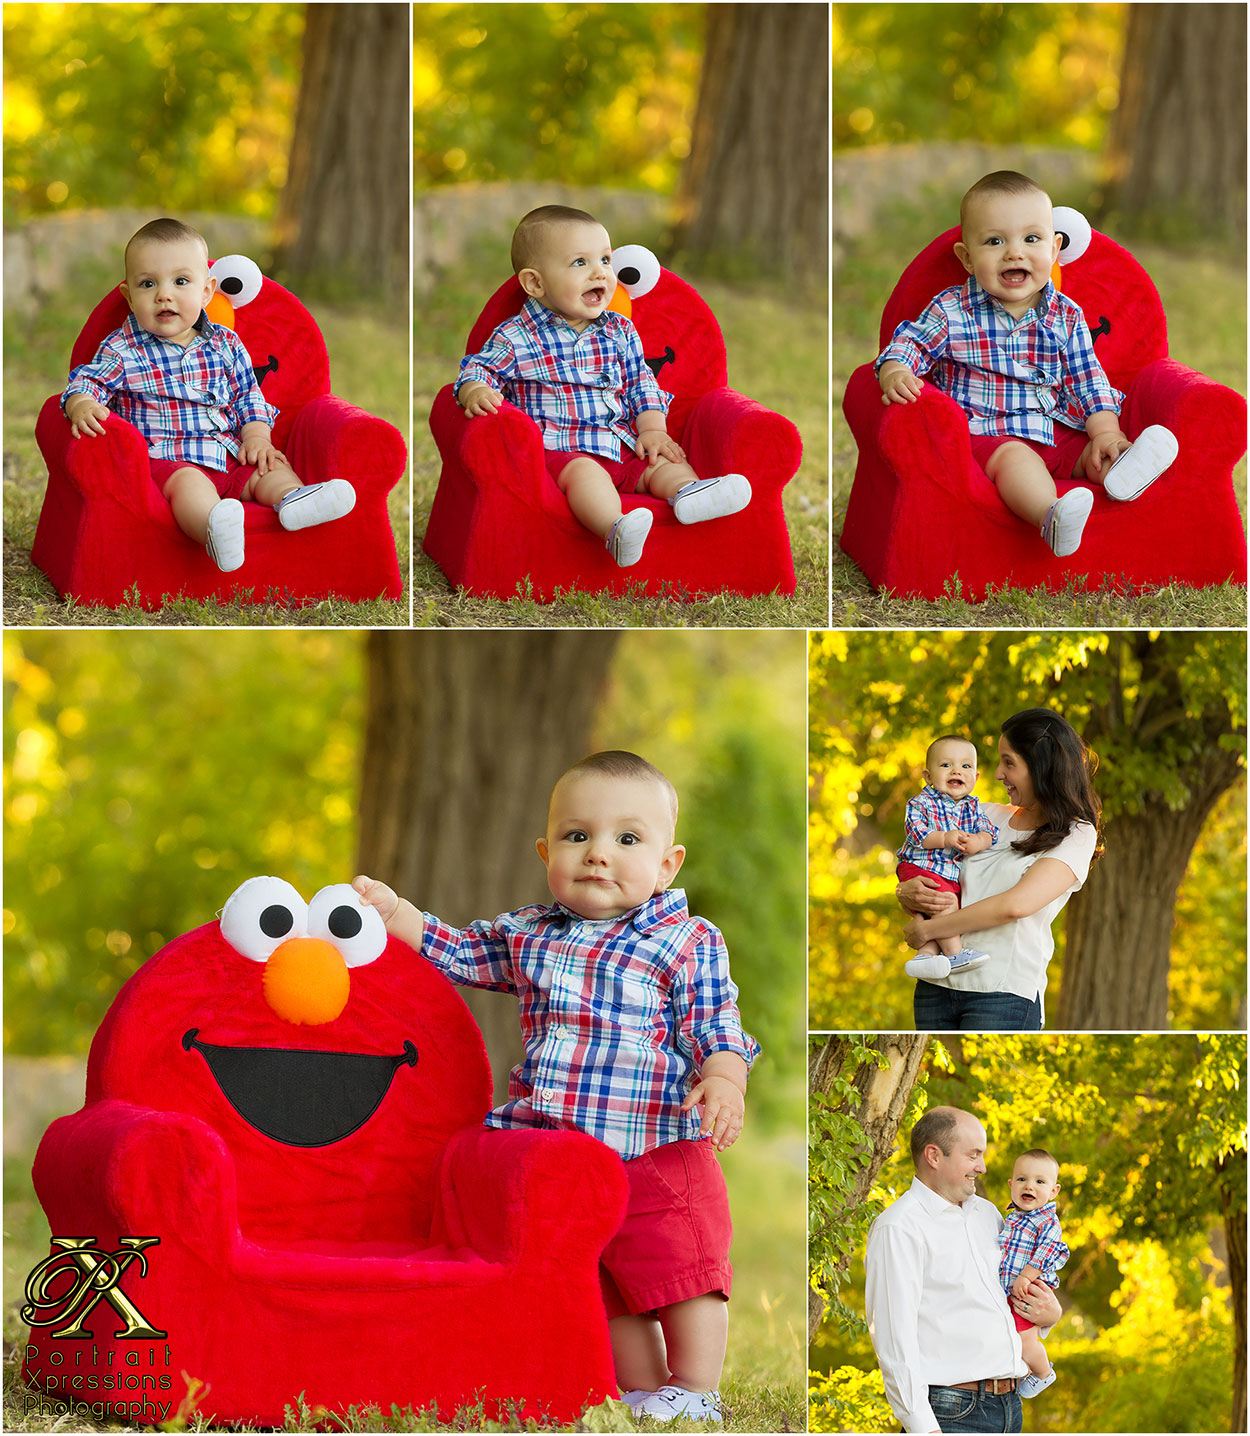 Dylan and Elmo